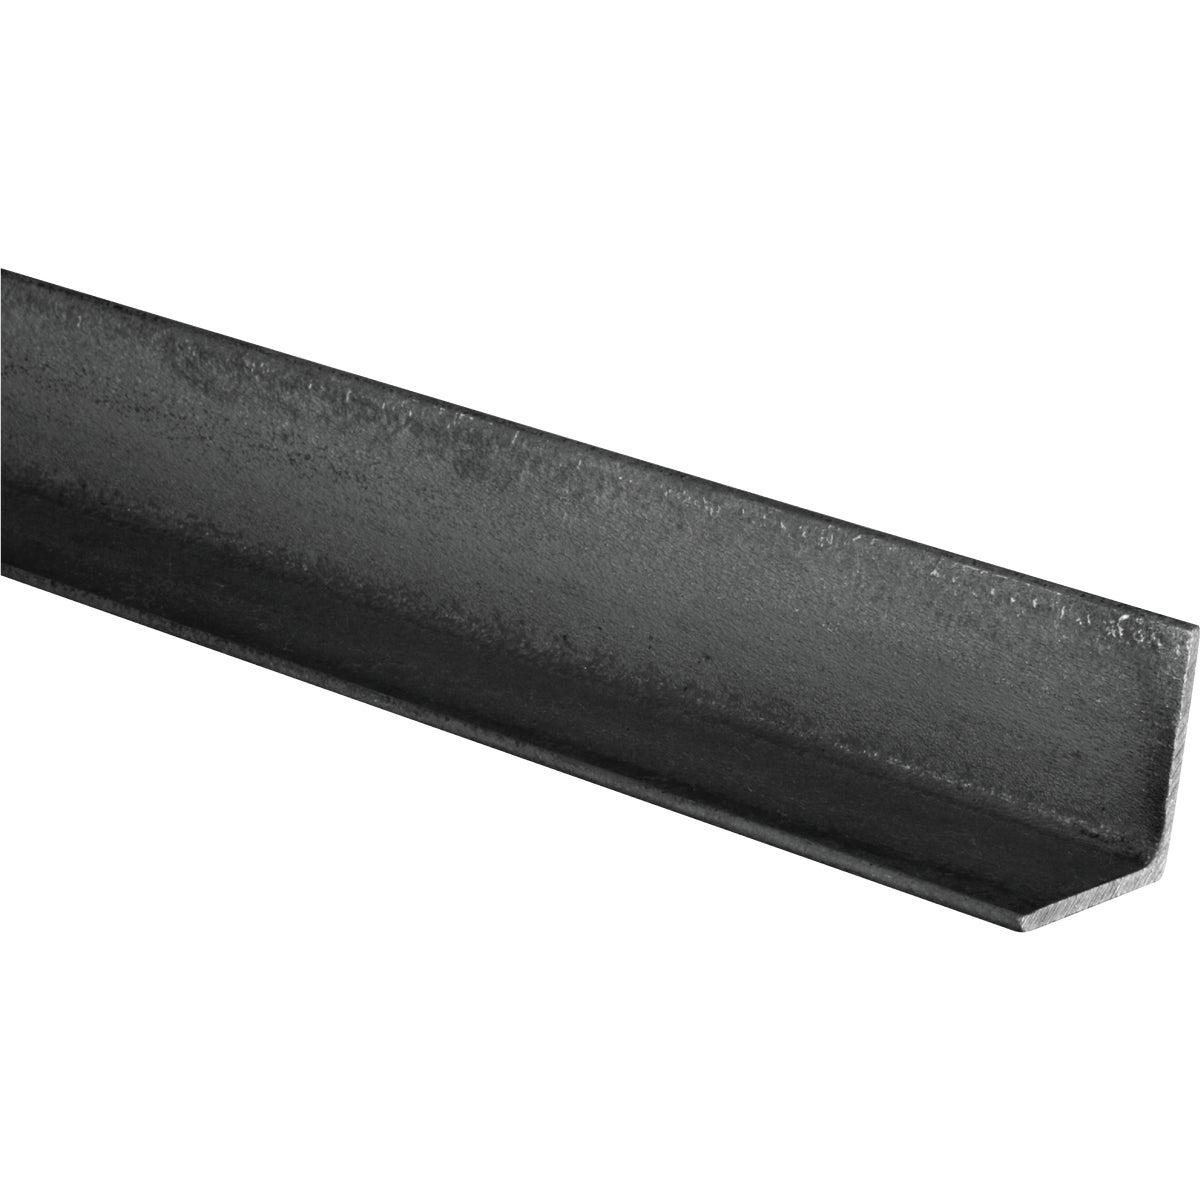 1/8X1-1/4X4' HR ANGLE - N215459 by National Mfg Co